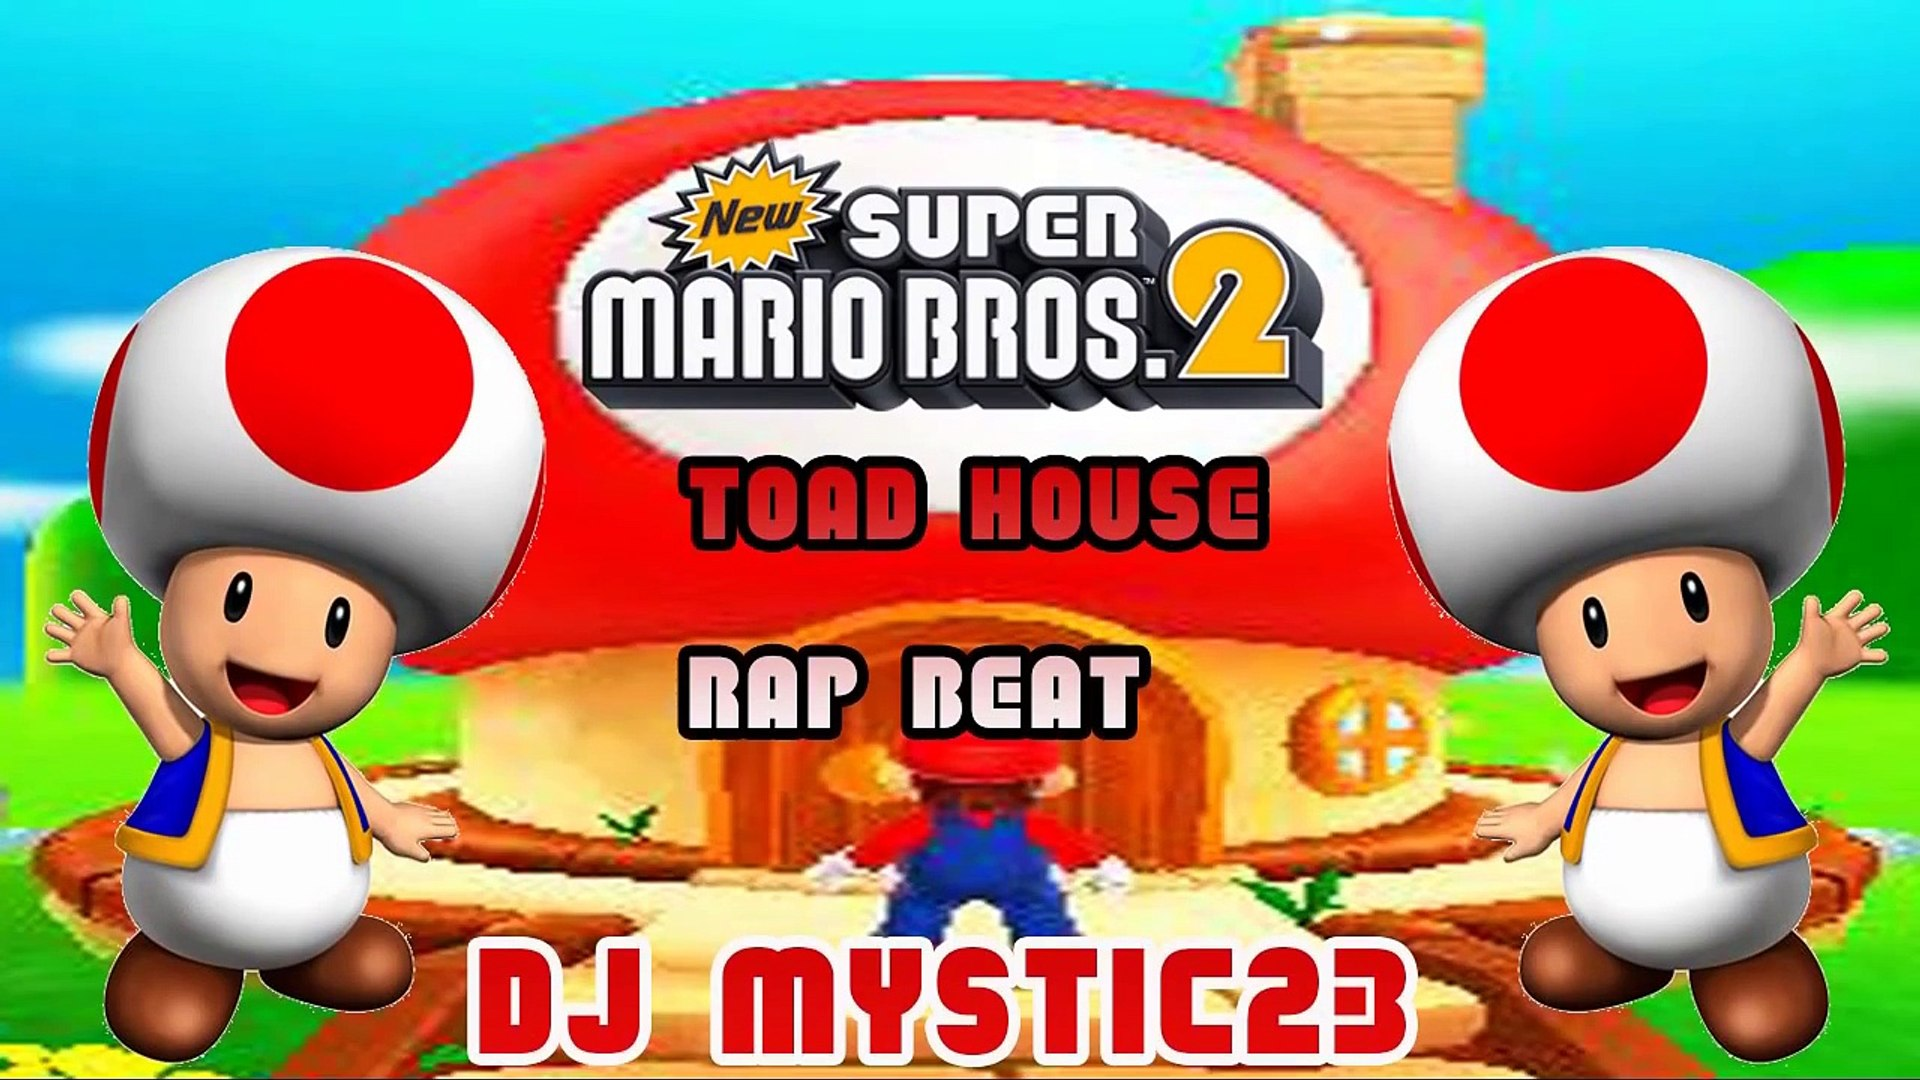 New Super Mario Bros 2 Toad House Rap Beat Video Dailymotion